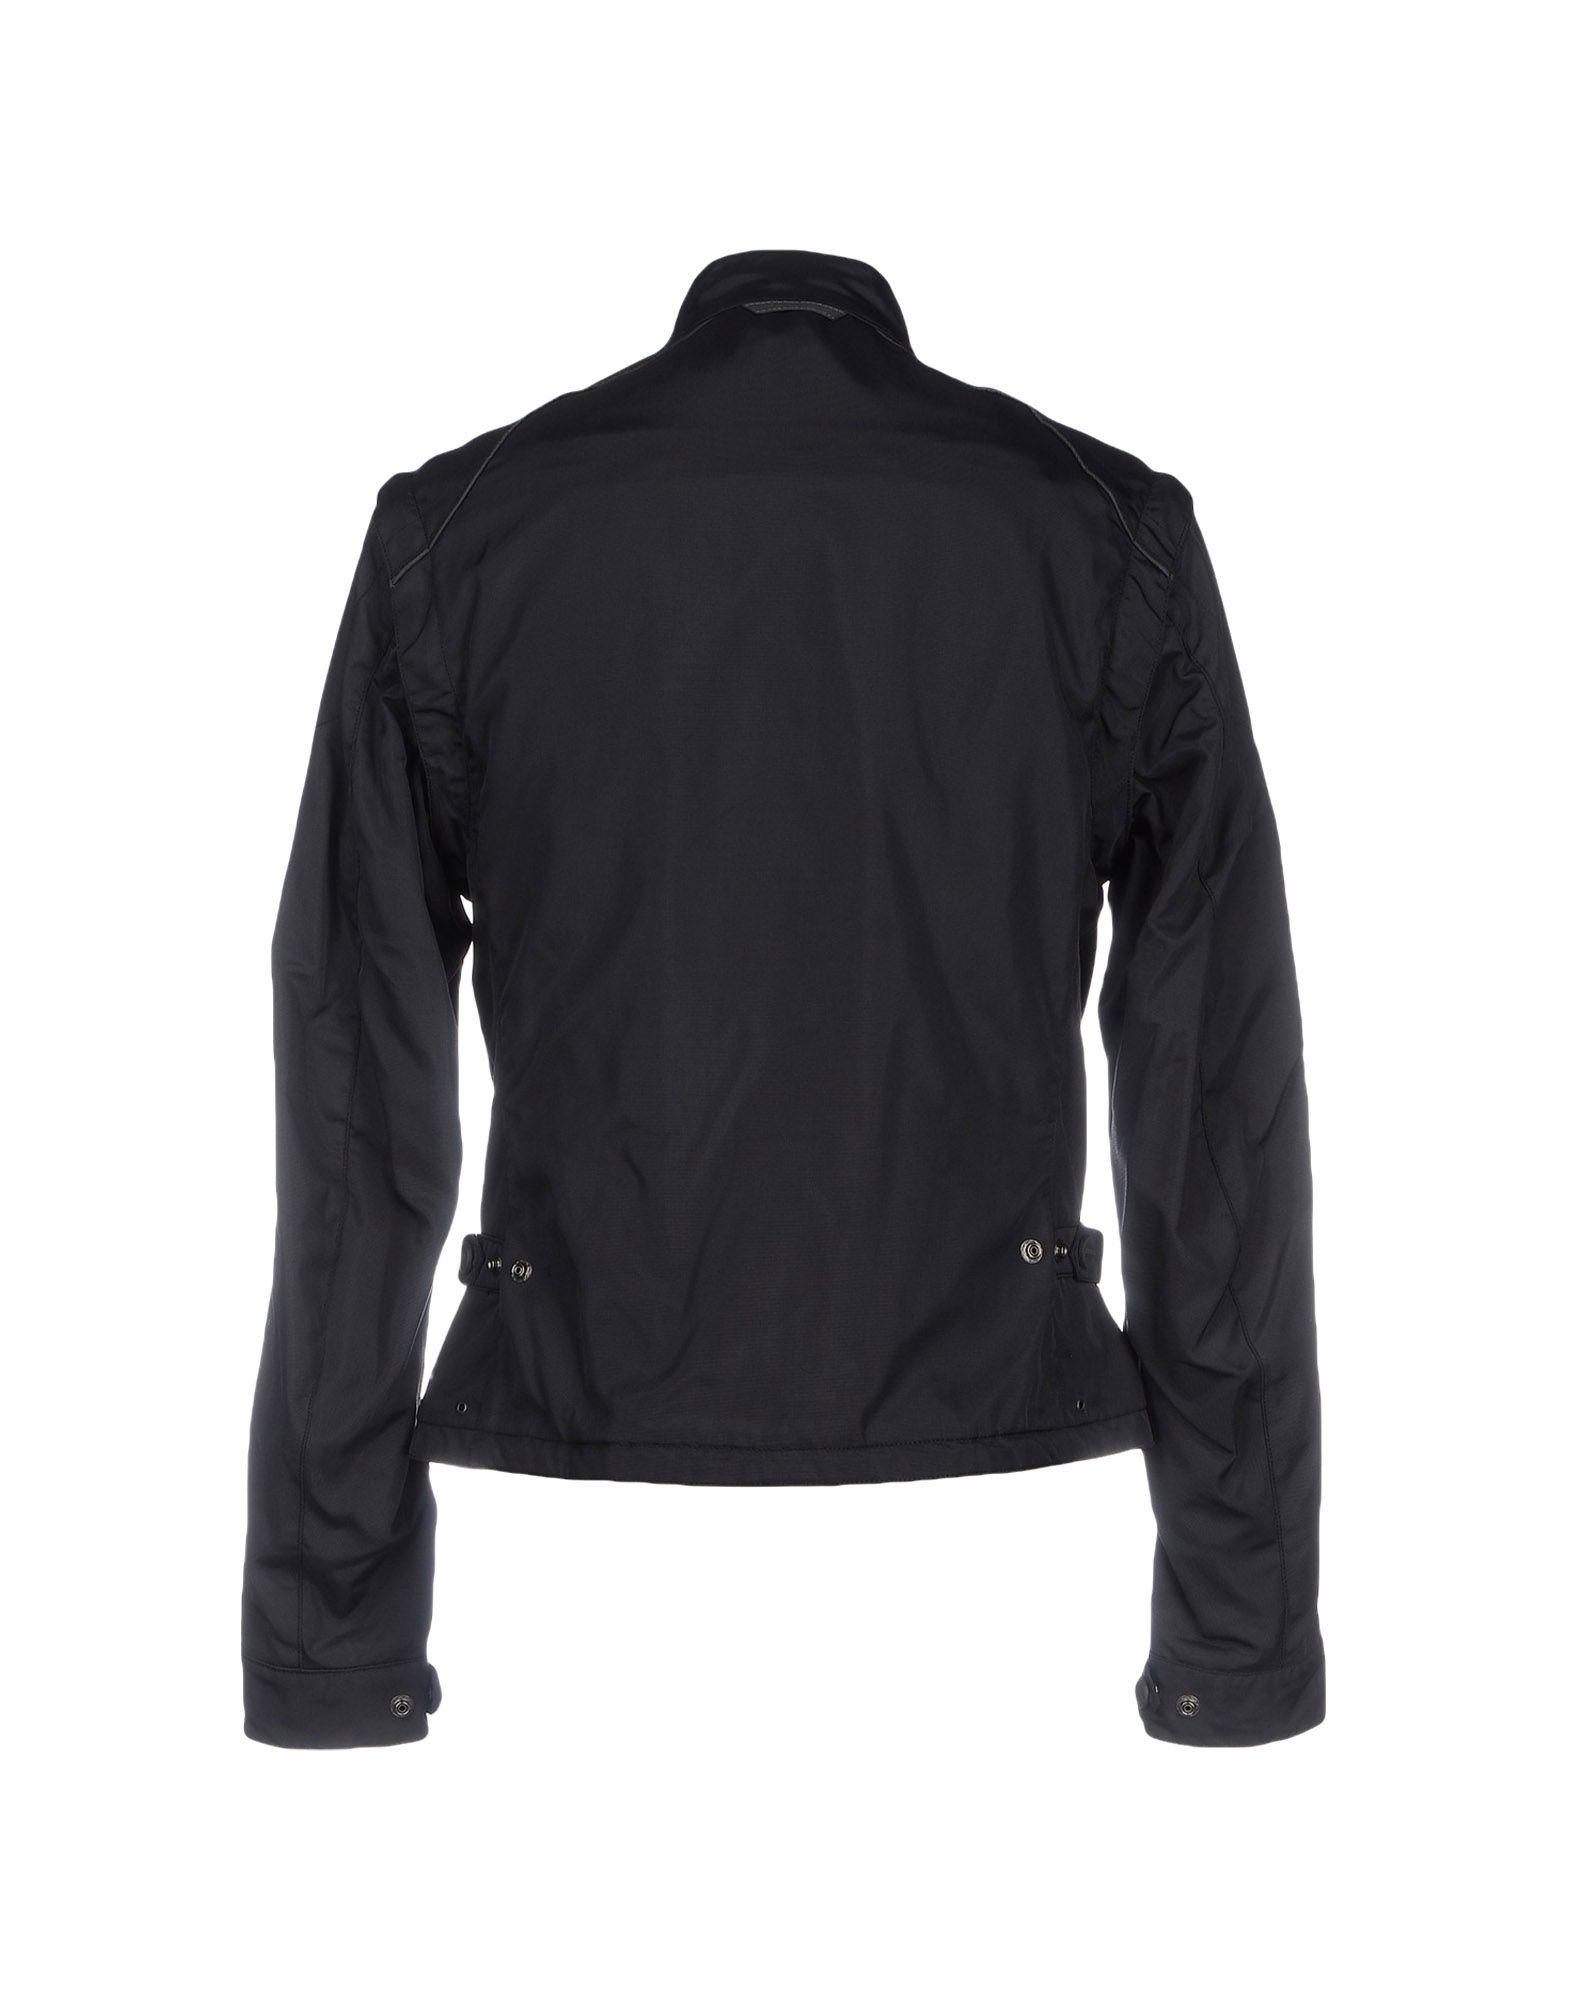 Brema Synthetic Jacket in Black for Men